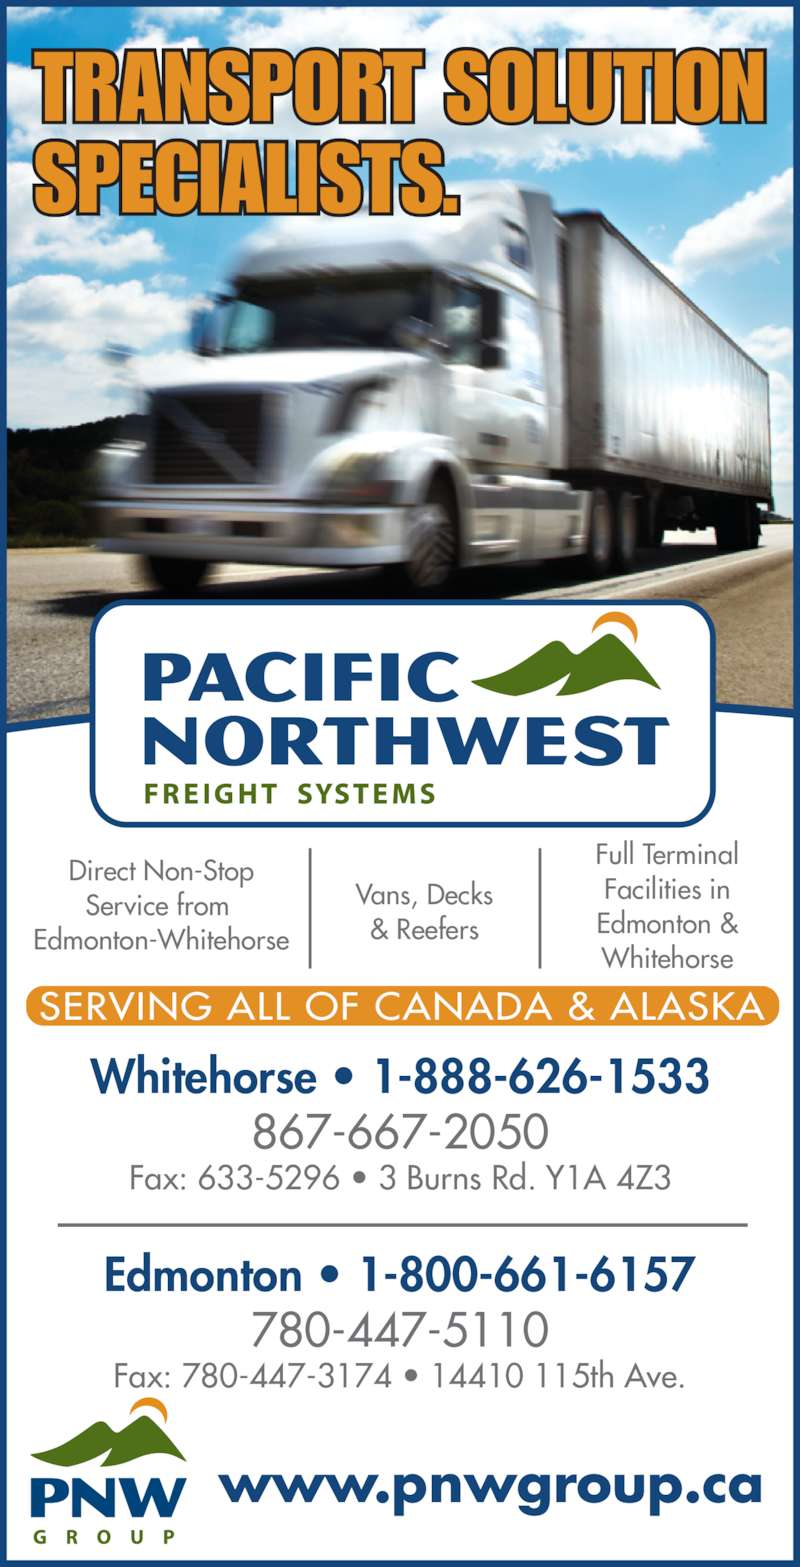 Pacific Northwest Freight Systems (867-667-2050) - Display Ad - Facilities in Edmonton & Whitehorse Direct Non-Stop Service from  Edmonton-Whitehorse Vans, Decks & Reefers Whitehorse • 1-888-626-1533 867-667-2050 Fax: 633-5296 • 3 Burns Rd. Y1A 4Z3 Edmonton • 1-800-661-6157 780-447-5110 Fax: 780-447-3174 • 14410 115th Ave. www.pnwgroup.ca TRANSPORT SOLUTION SPECIALISTS. SERVING ALL OF CANADA & ALASKA Full Terminal